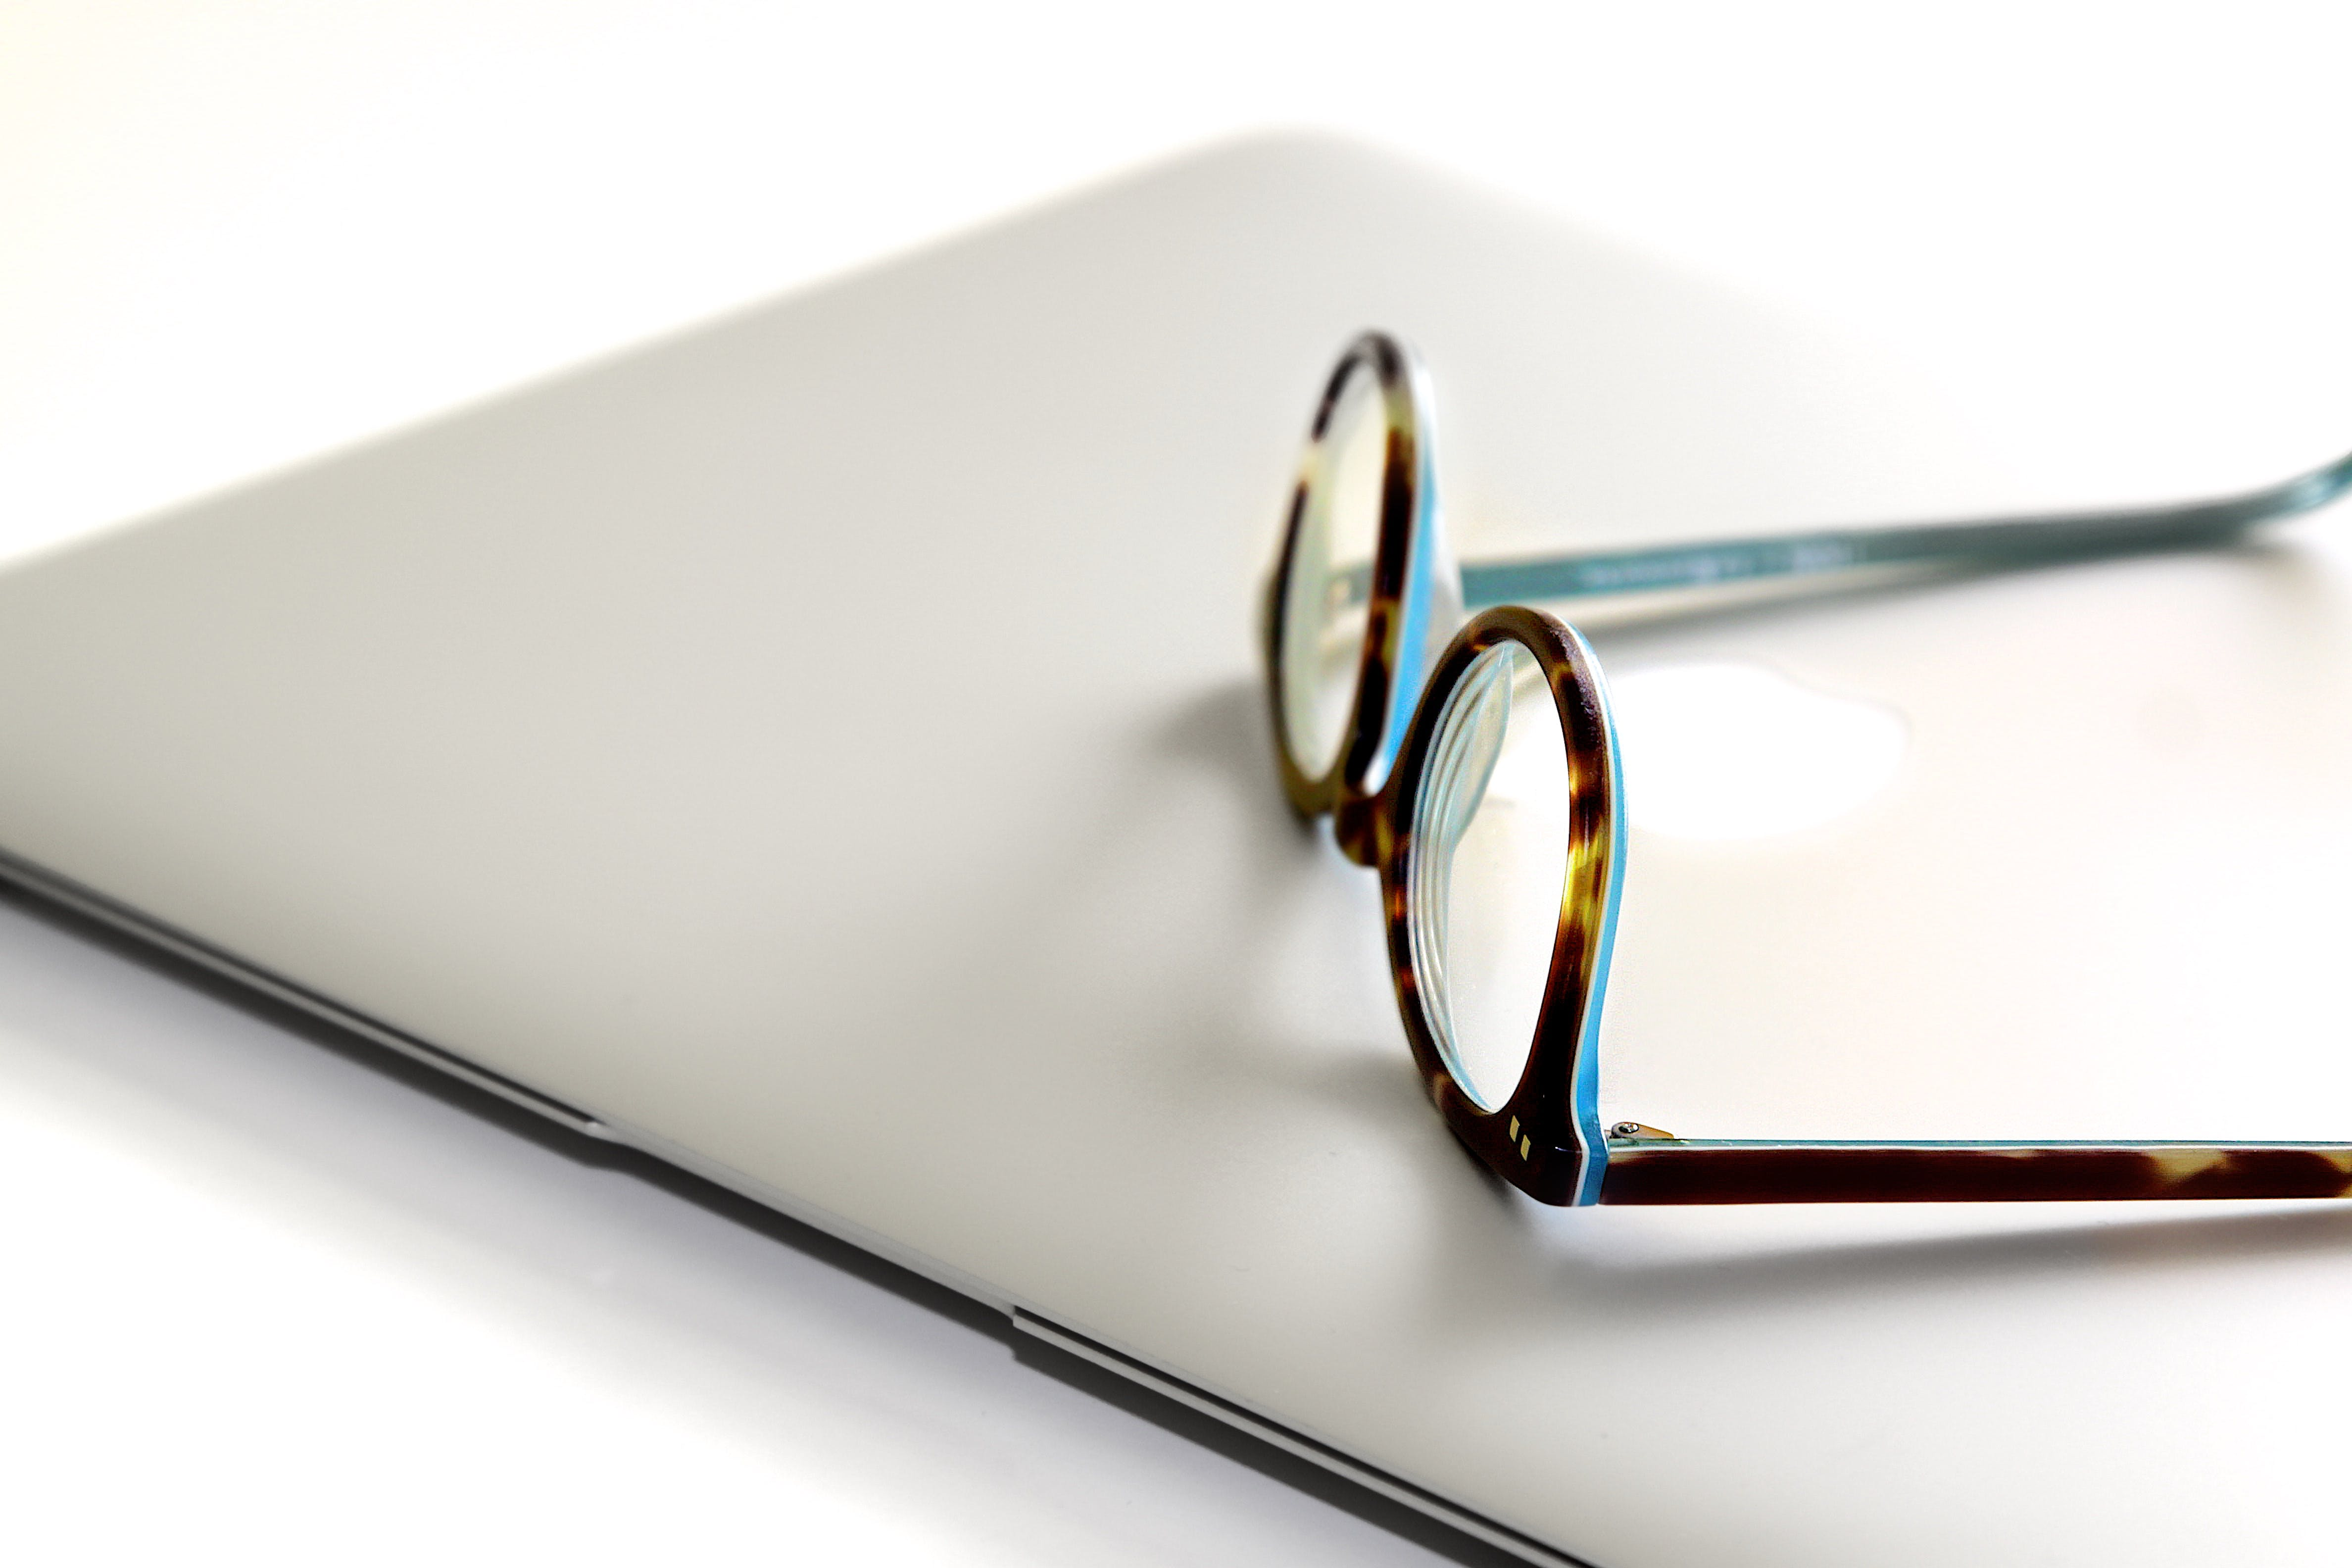 Black and Blue Framed Eyeglasses on Silver Laptop